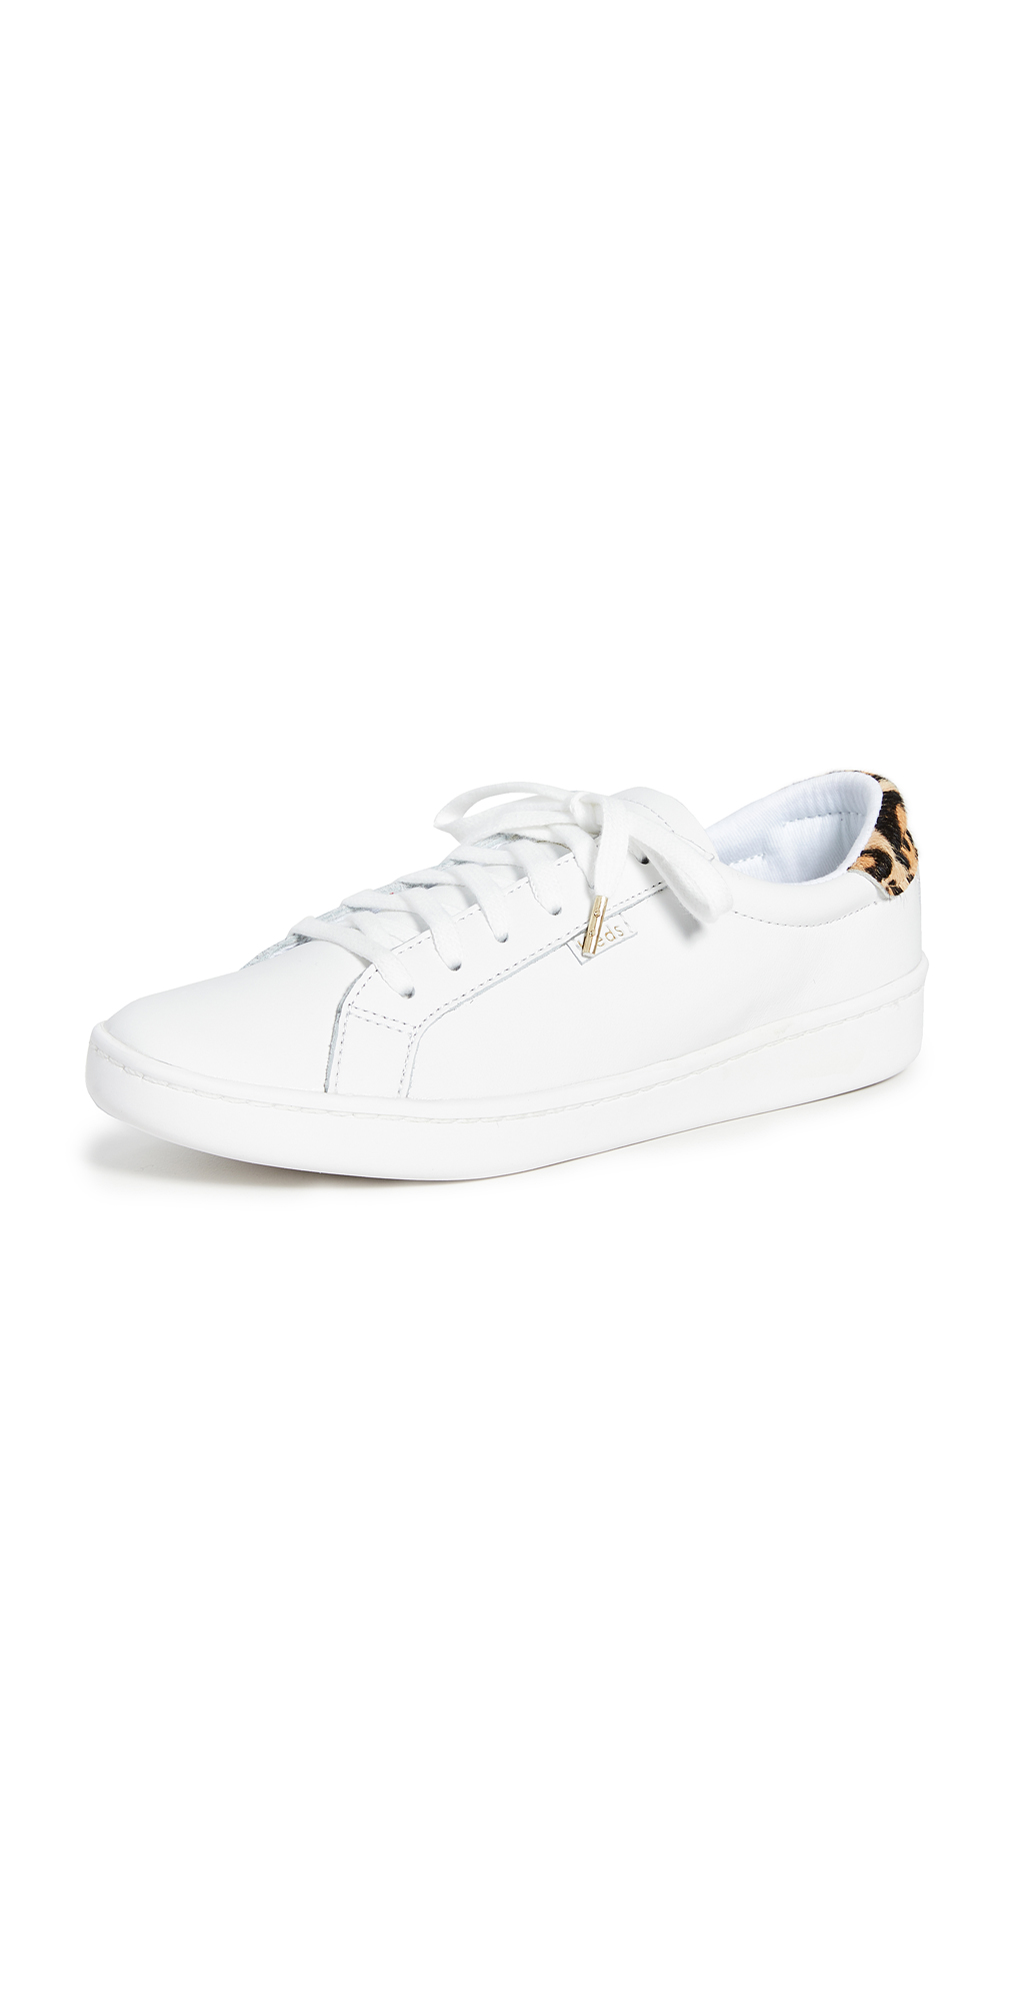 x Kate Spade Ace Sneakers